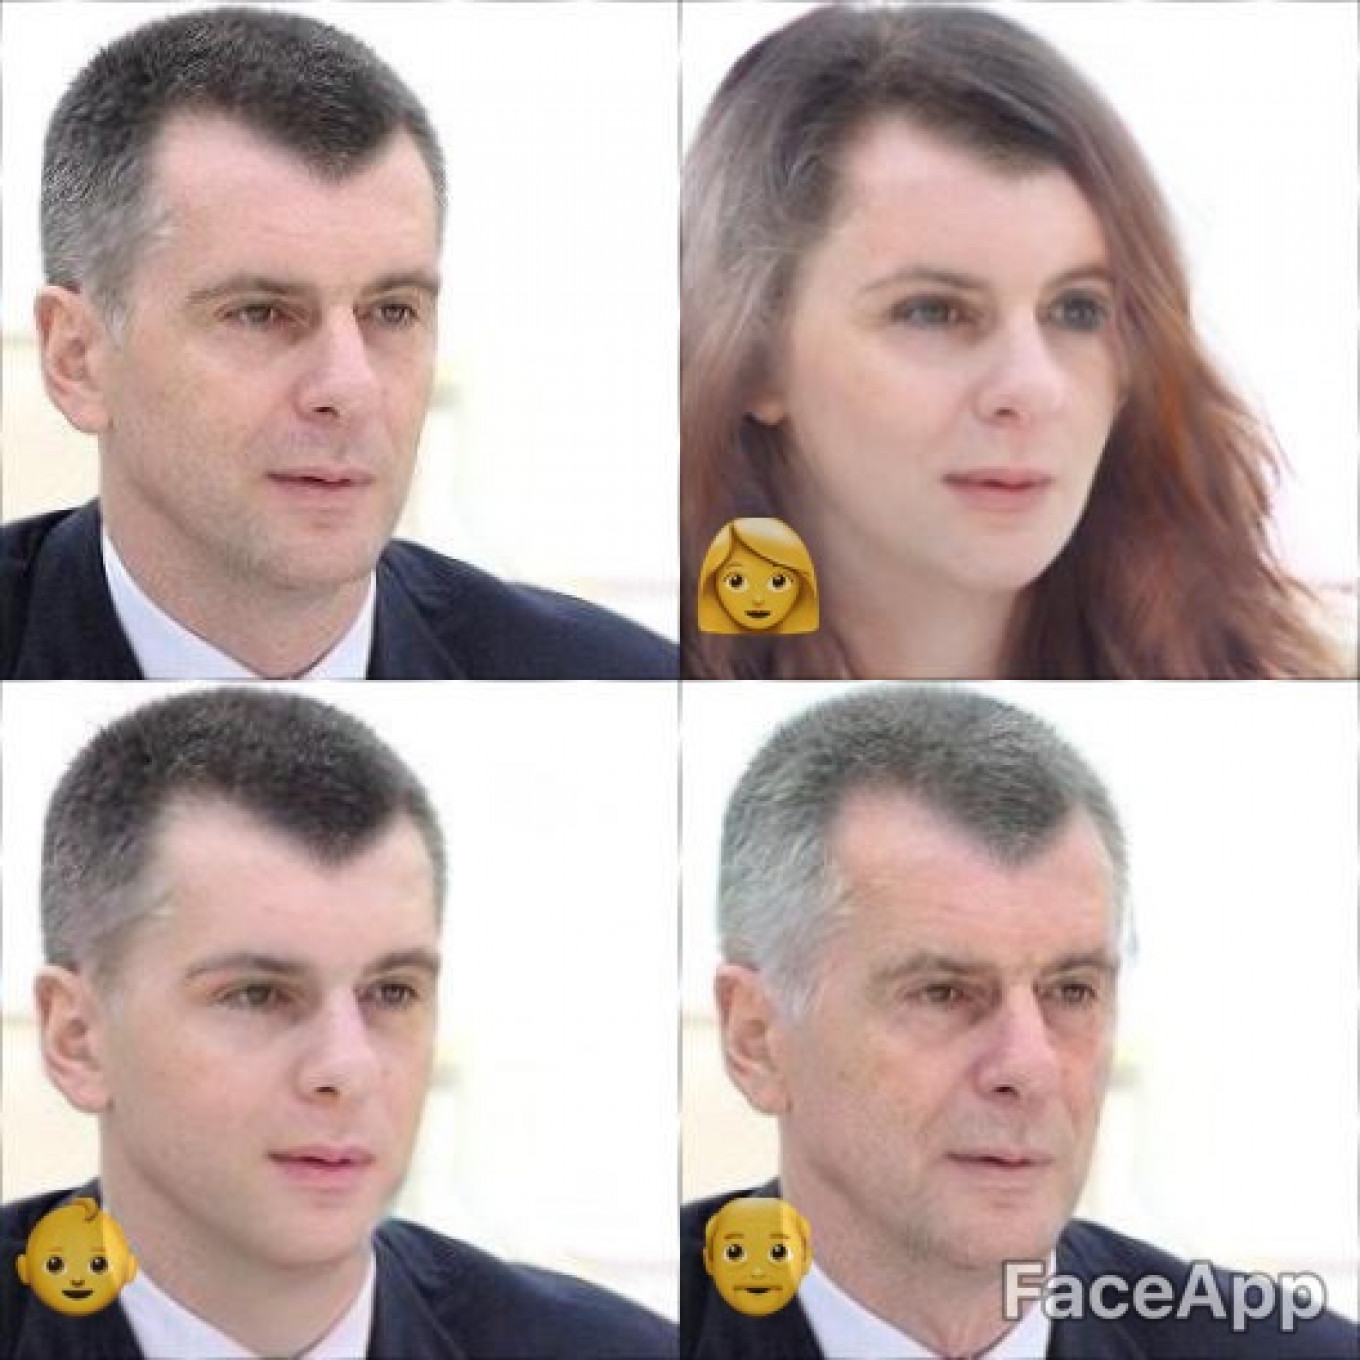 Oligarch Mikhail Prokhorov is finally selling off his cherished independent news agency RBC. Here he is as a woman, young man, and old man.				 				Kremlin Press Service